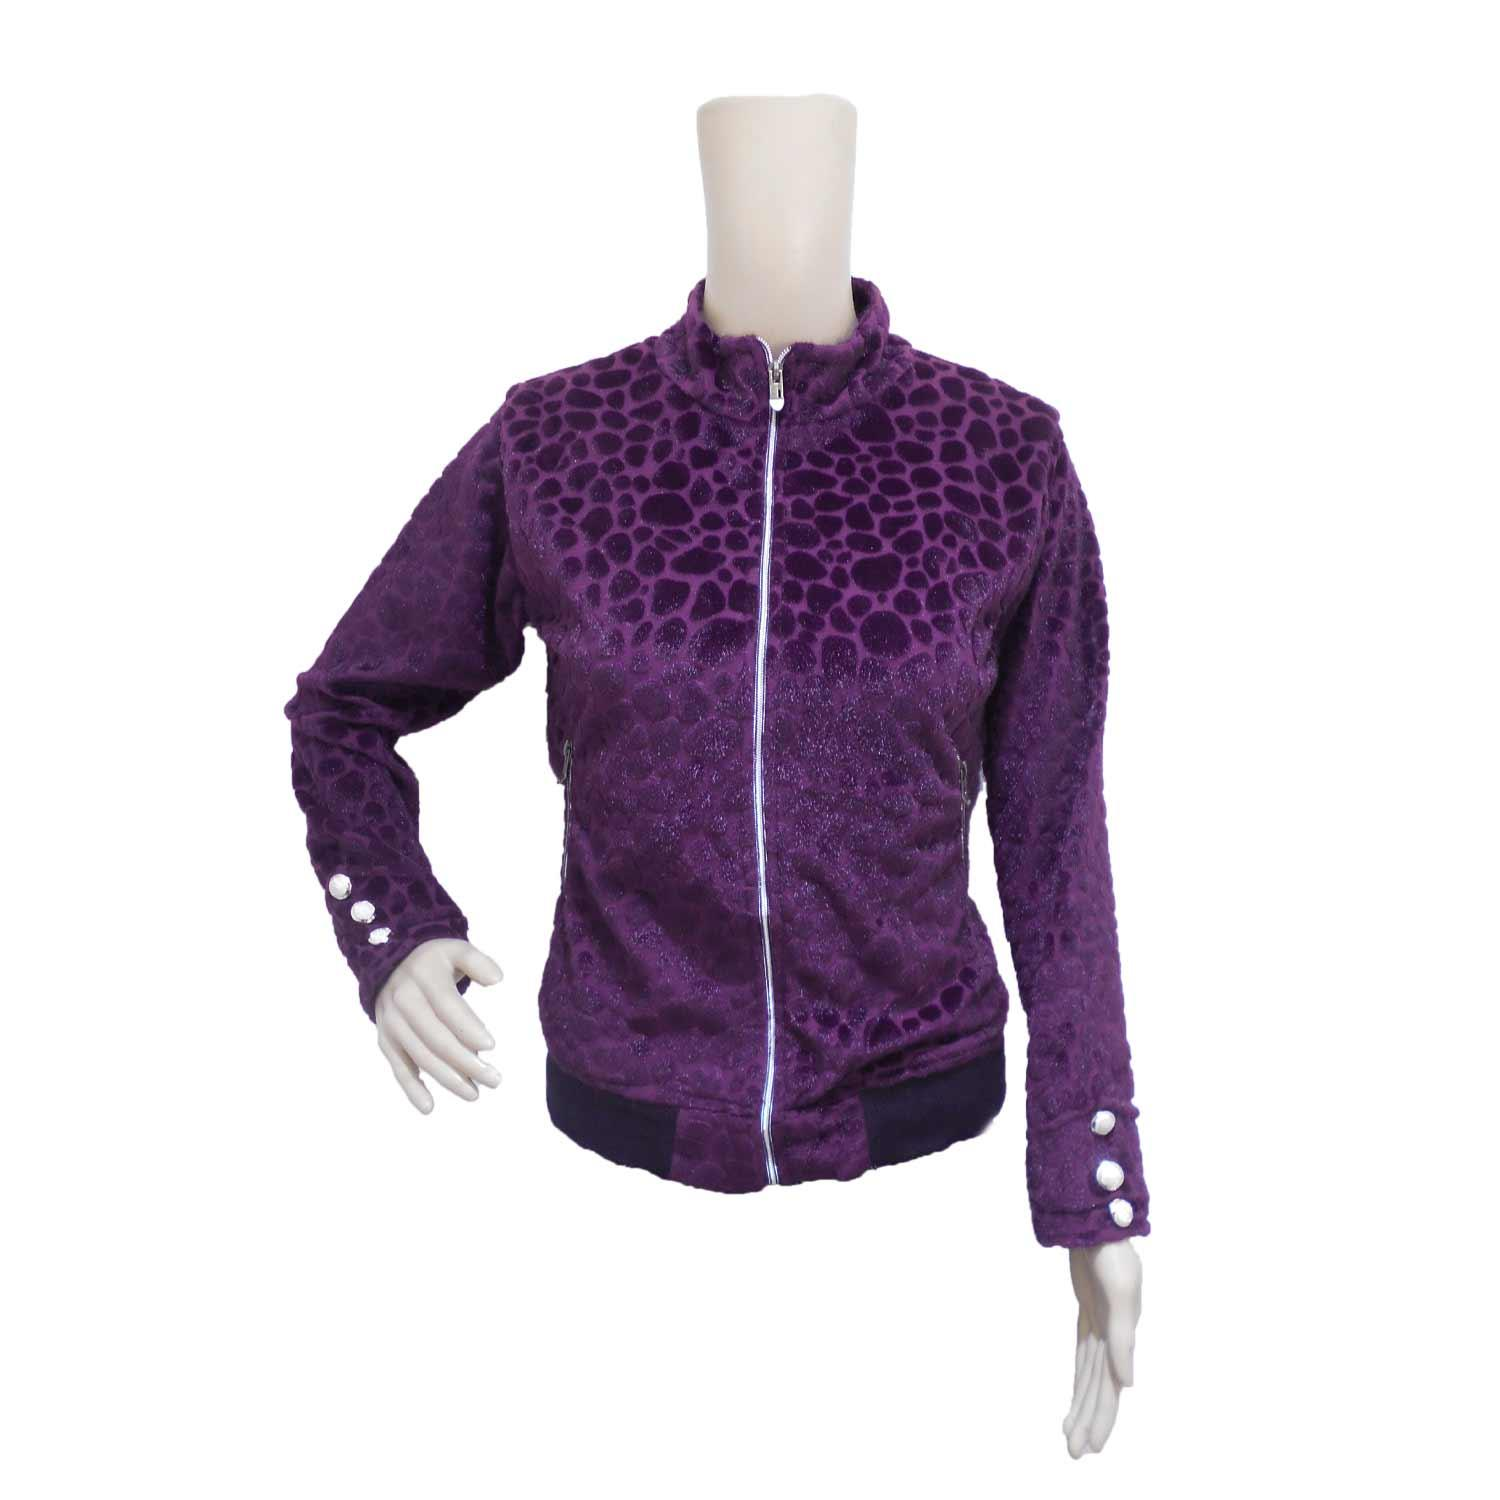 LADIE'S MISFIT JACKET VELVET PURPLE FREE SIZE